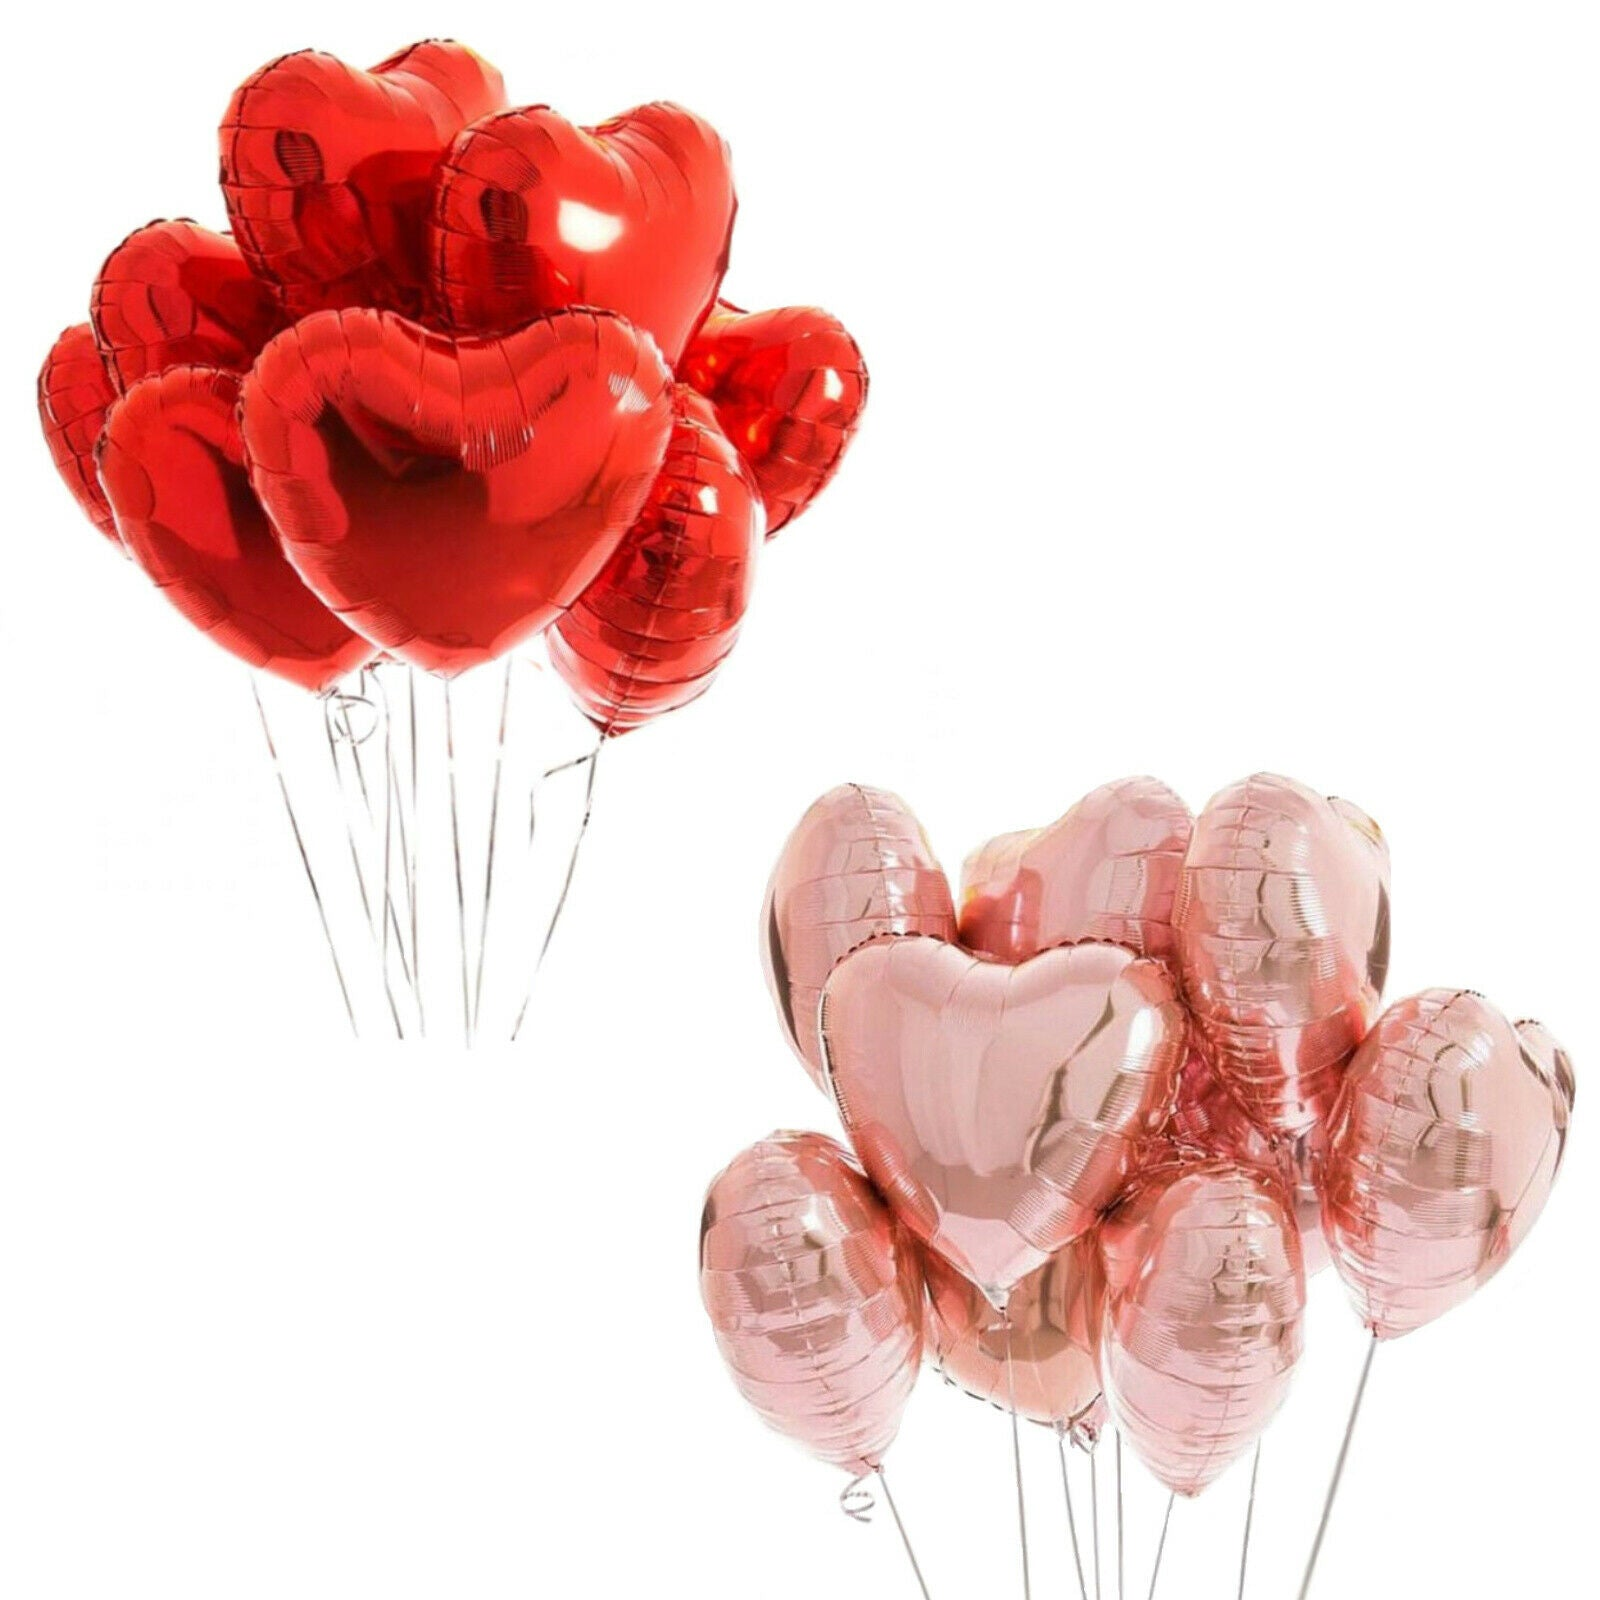 Love Heart Balloons - Rose Gold & Red Helium Foil Hearts